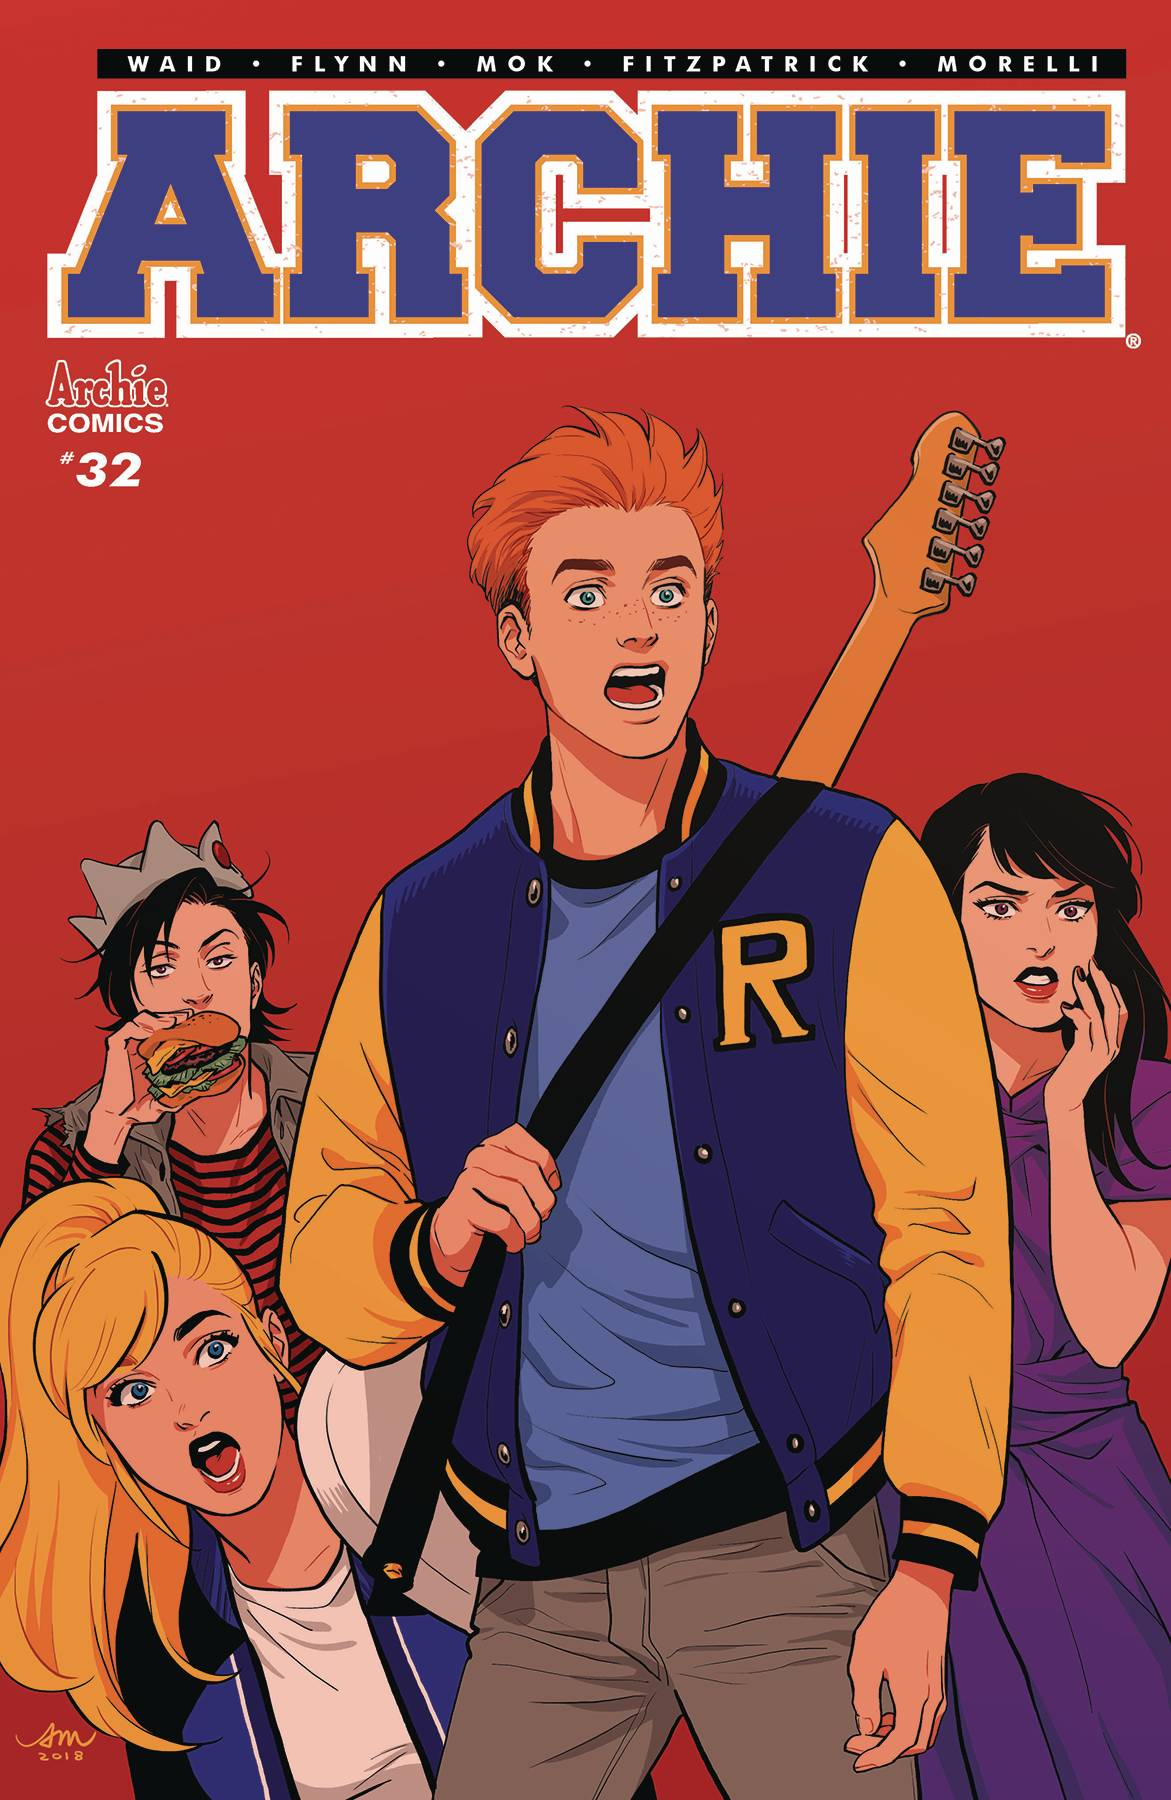 Archie (Vol. 2)  #32 Cover A